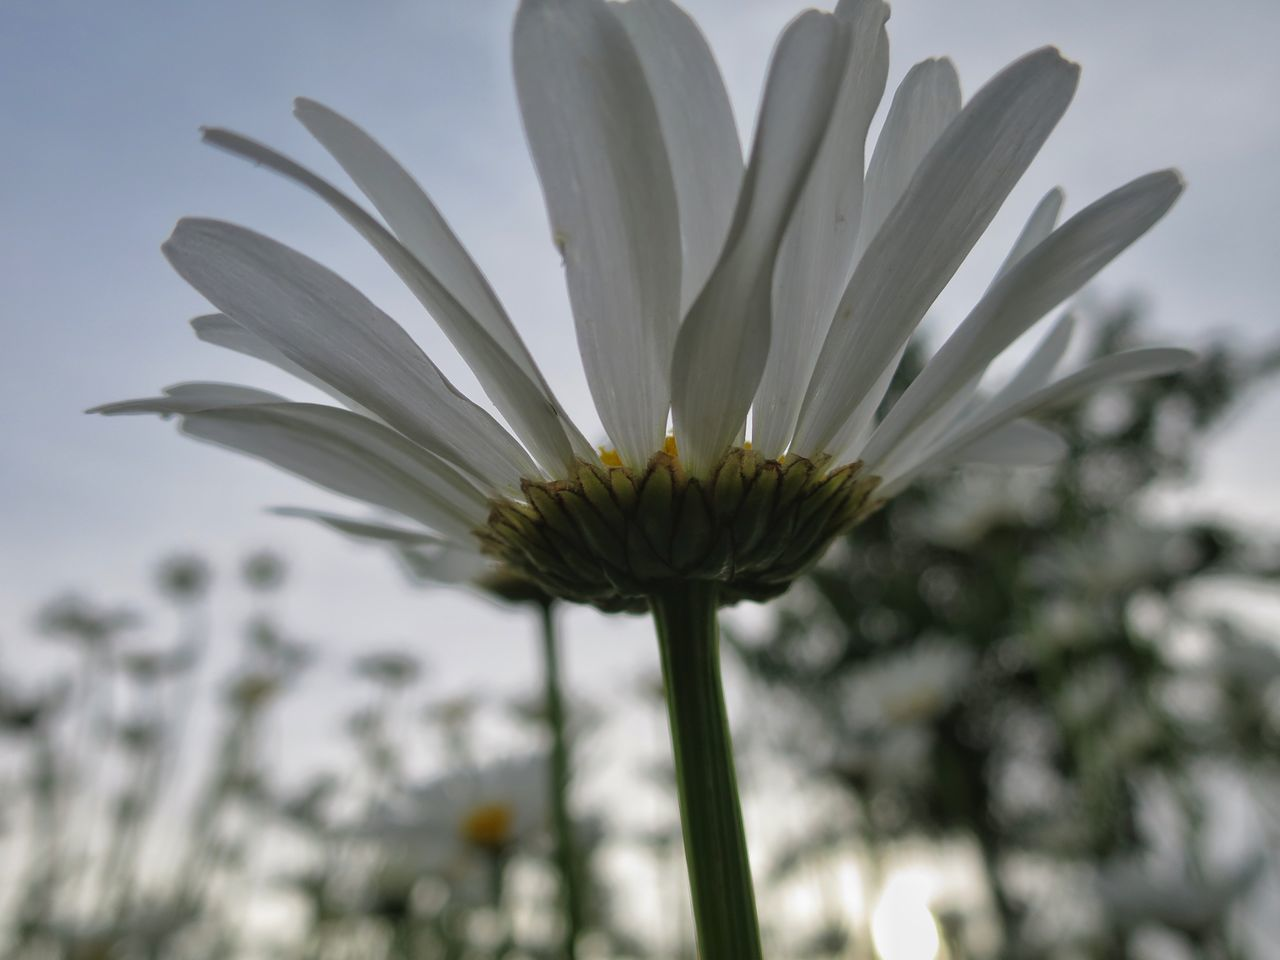 In My Garden Flower Bed Daisy Close Up Limited Depth Of Field Nature Beauty Sky